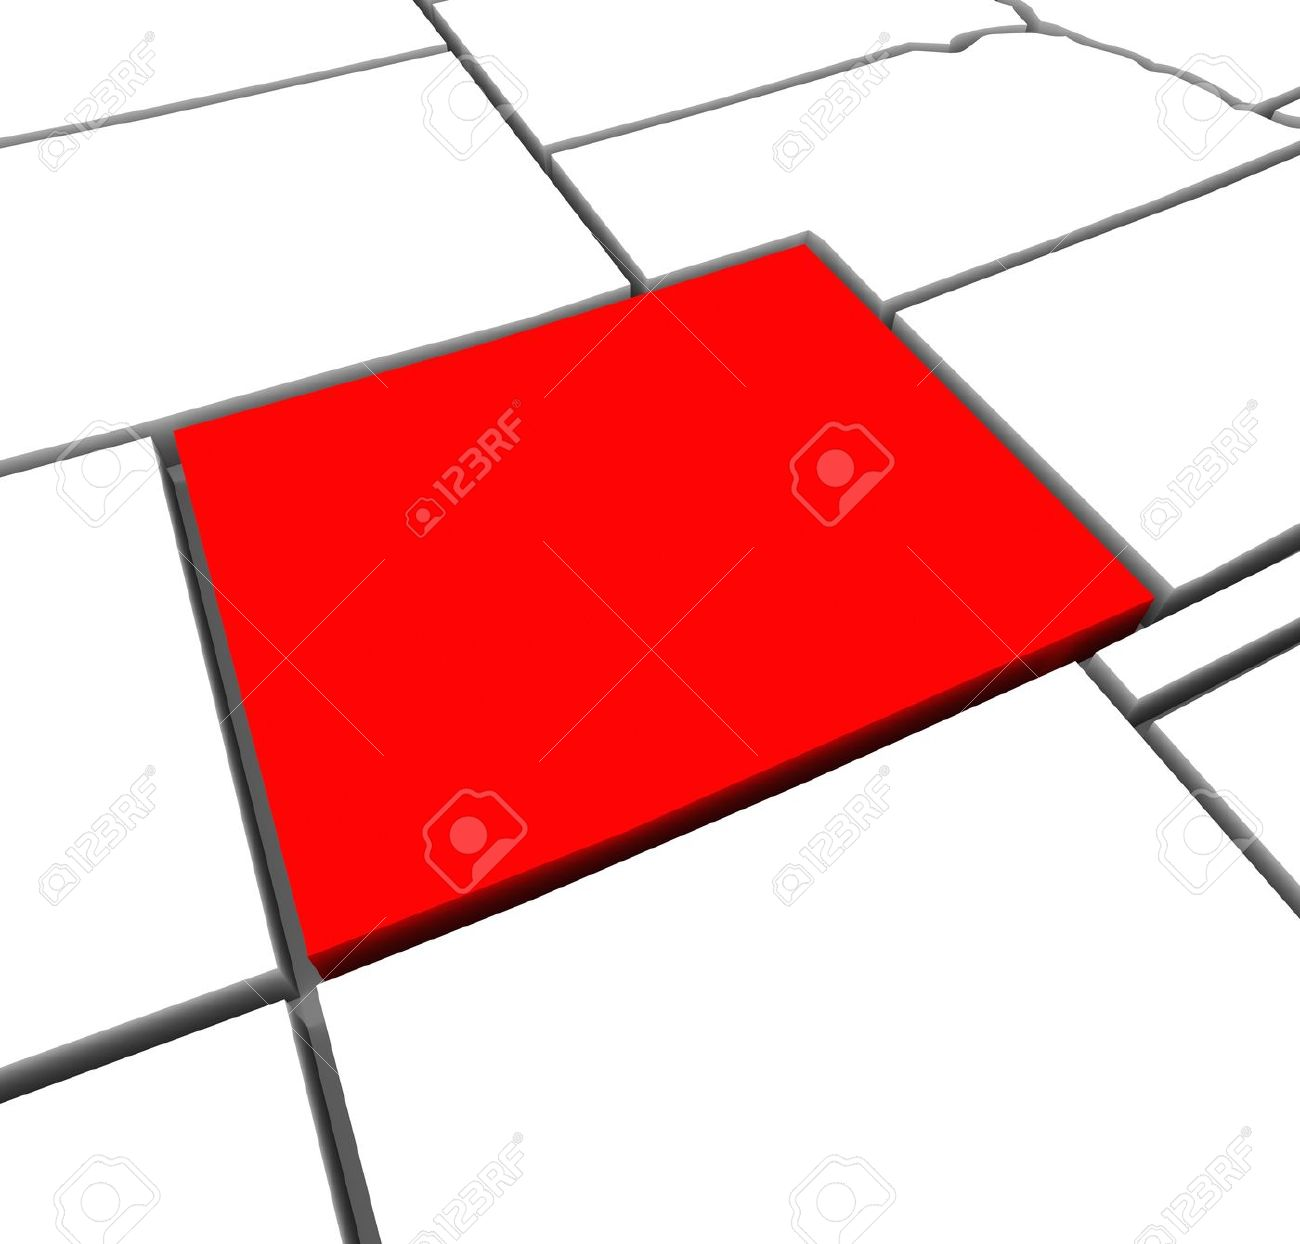 Red state map clipart graphic freeuse stock A Red Abstract State Map Of Colorado, A 3D Render Symbolizing ... graphic freeuse stock